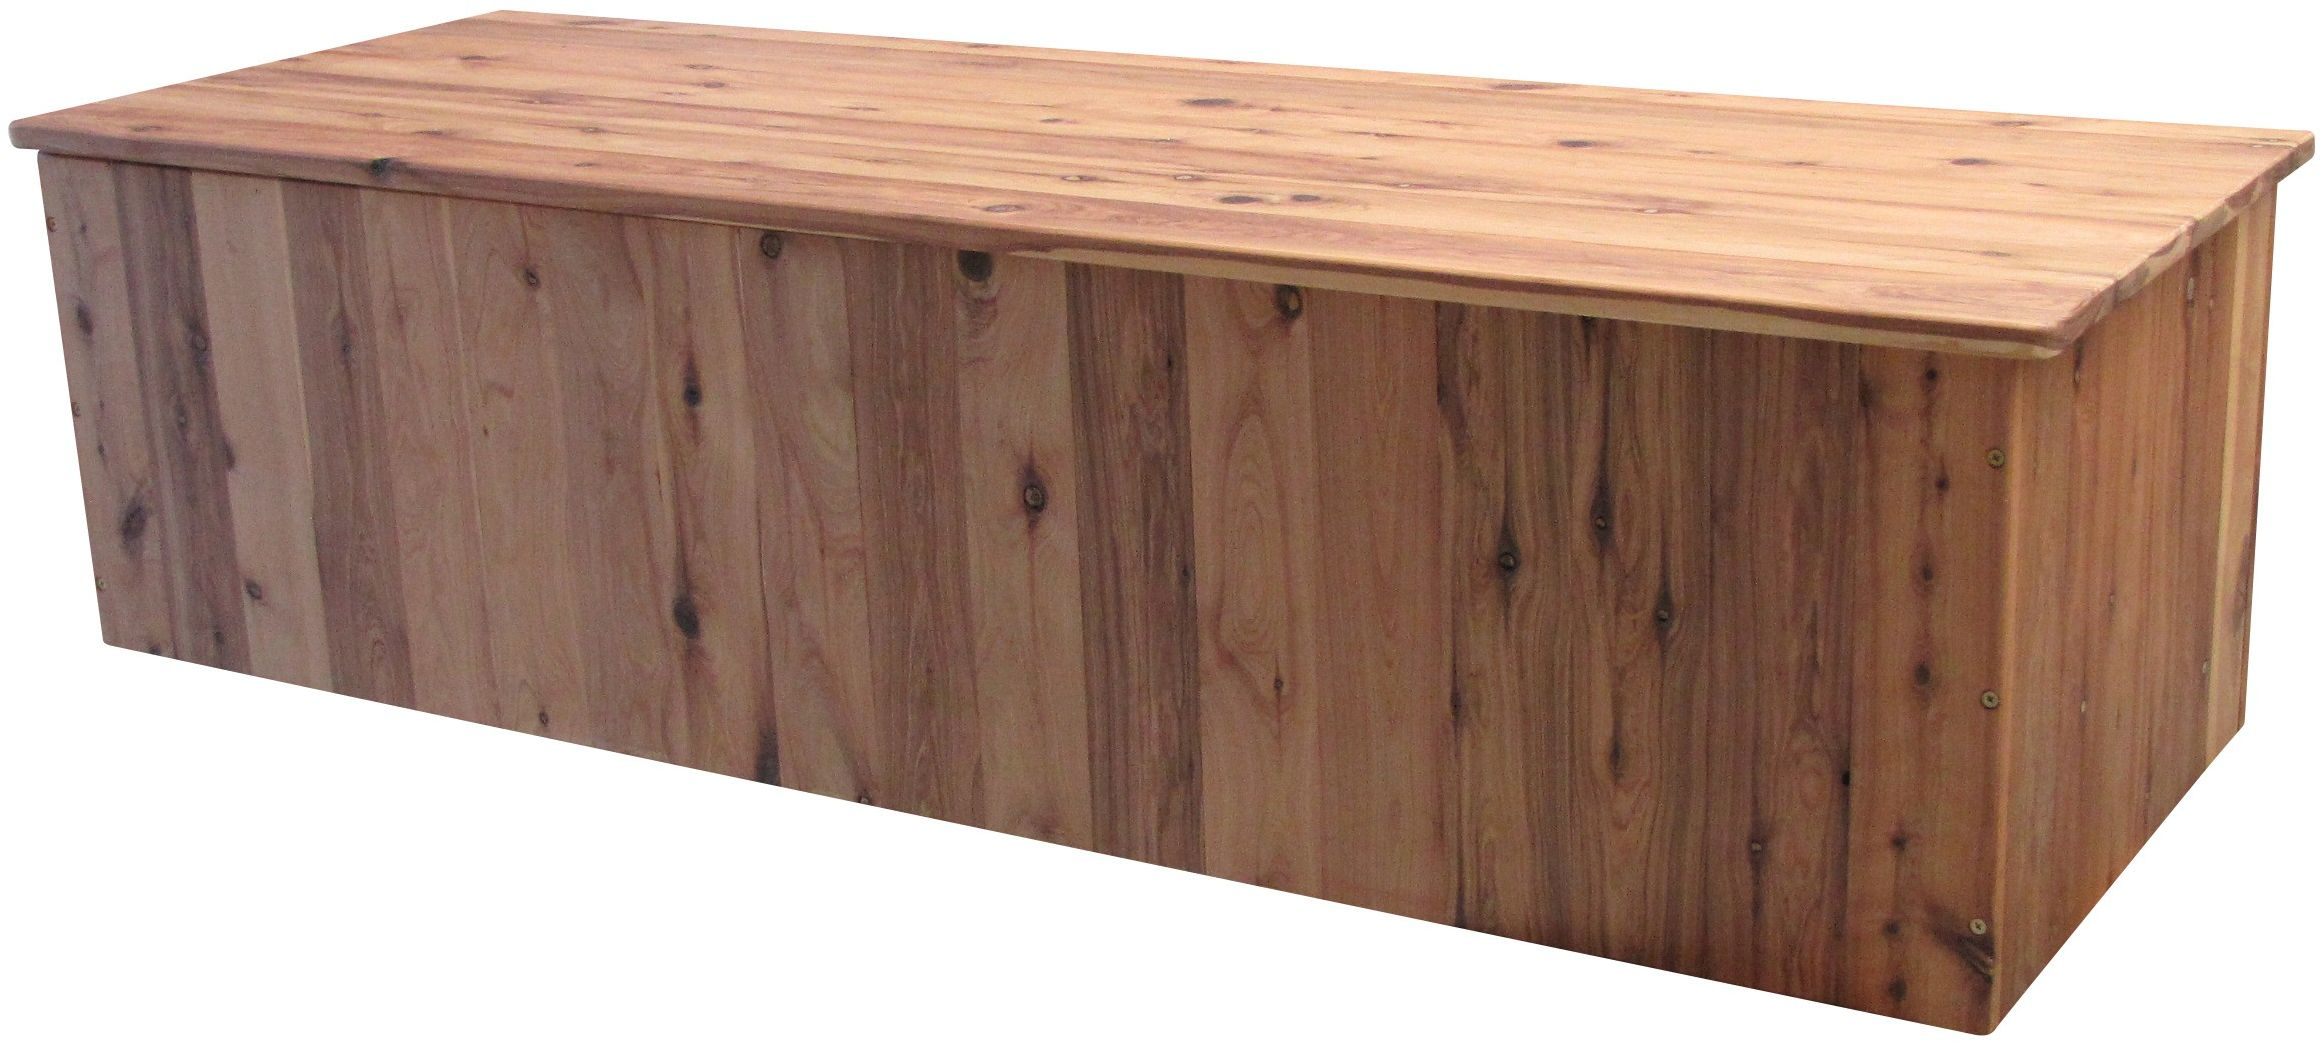 Benches Amp Chairs Bench Timber Furniture Outdoor